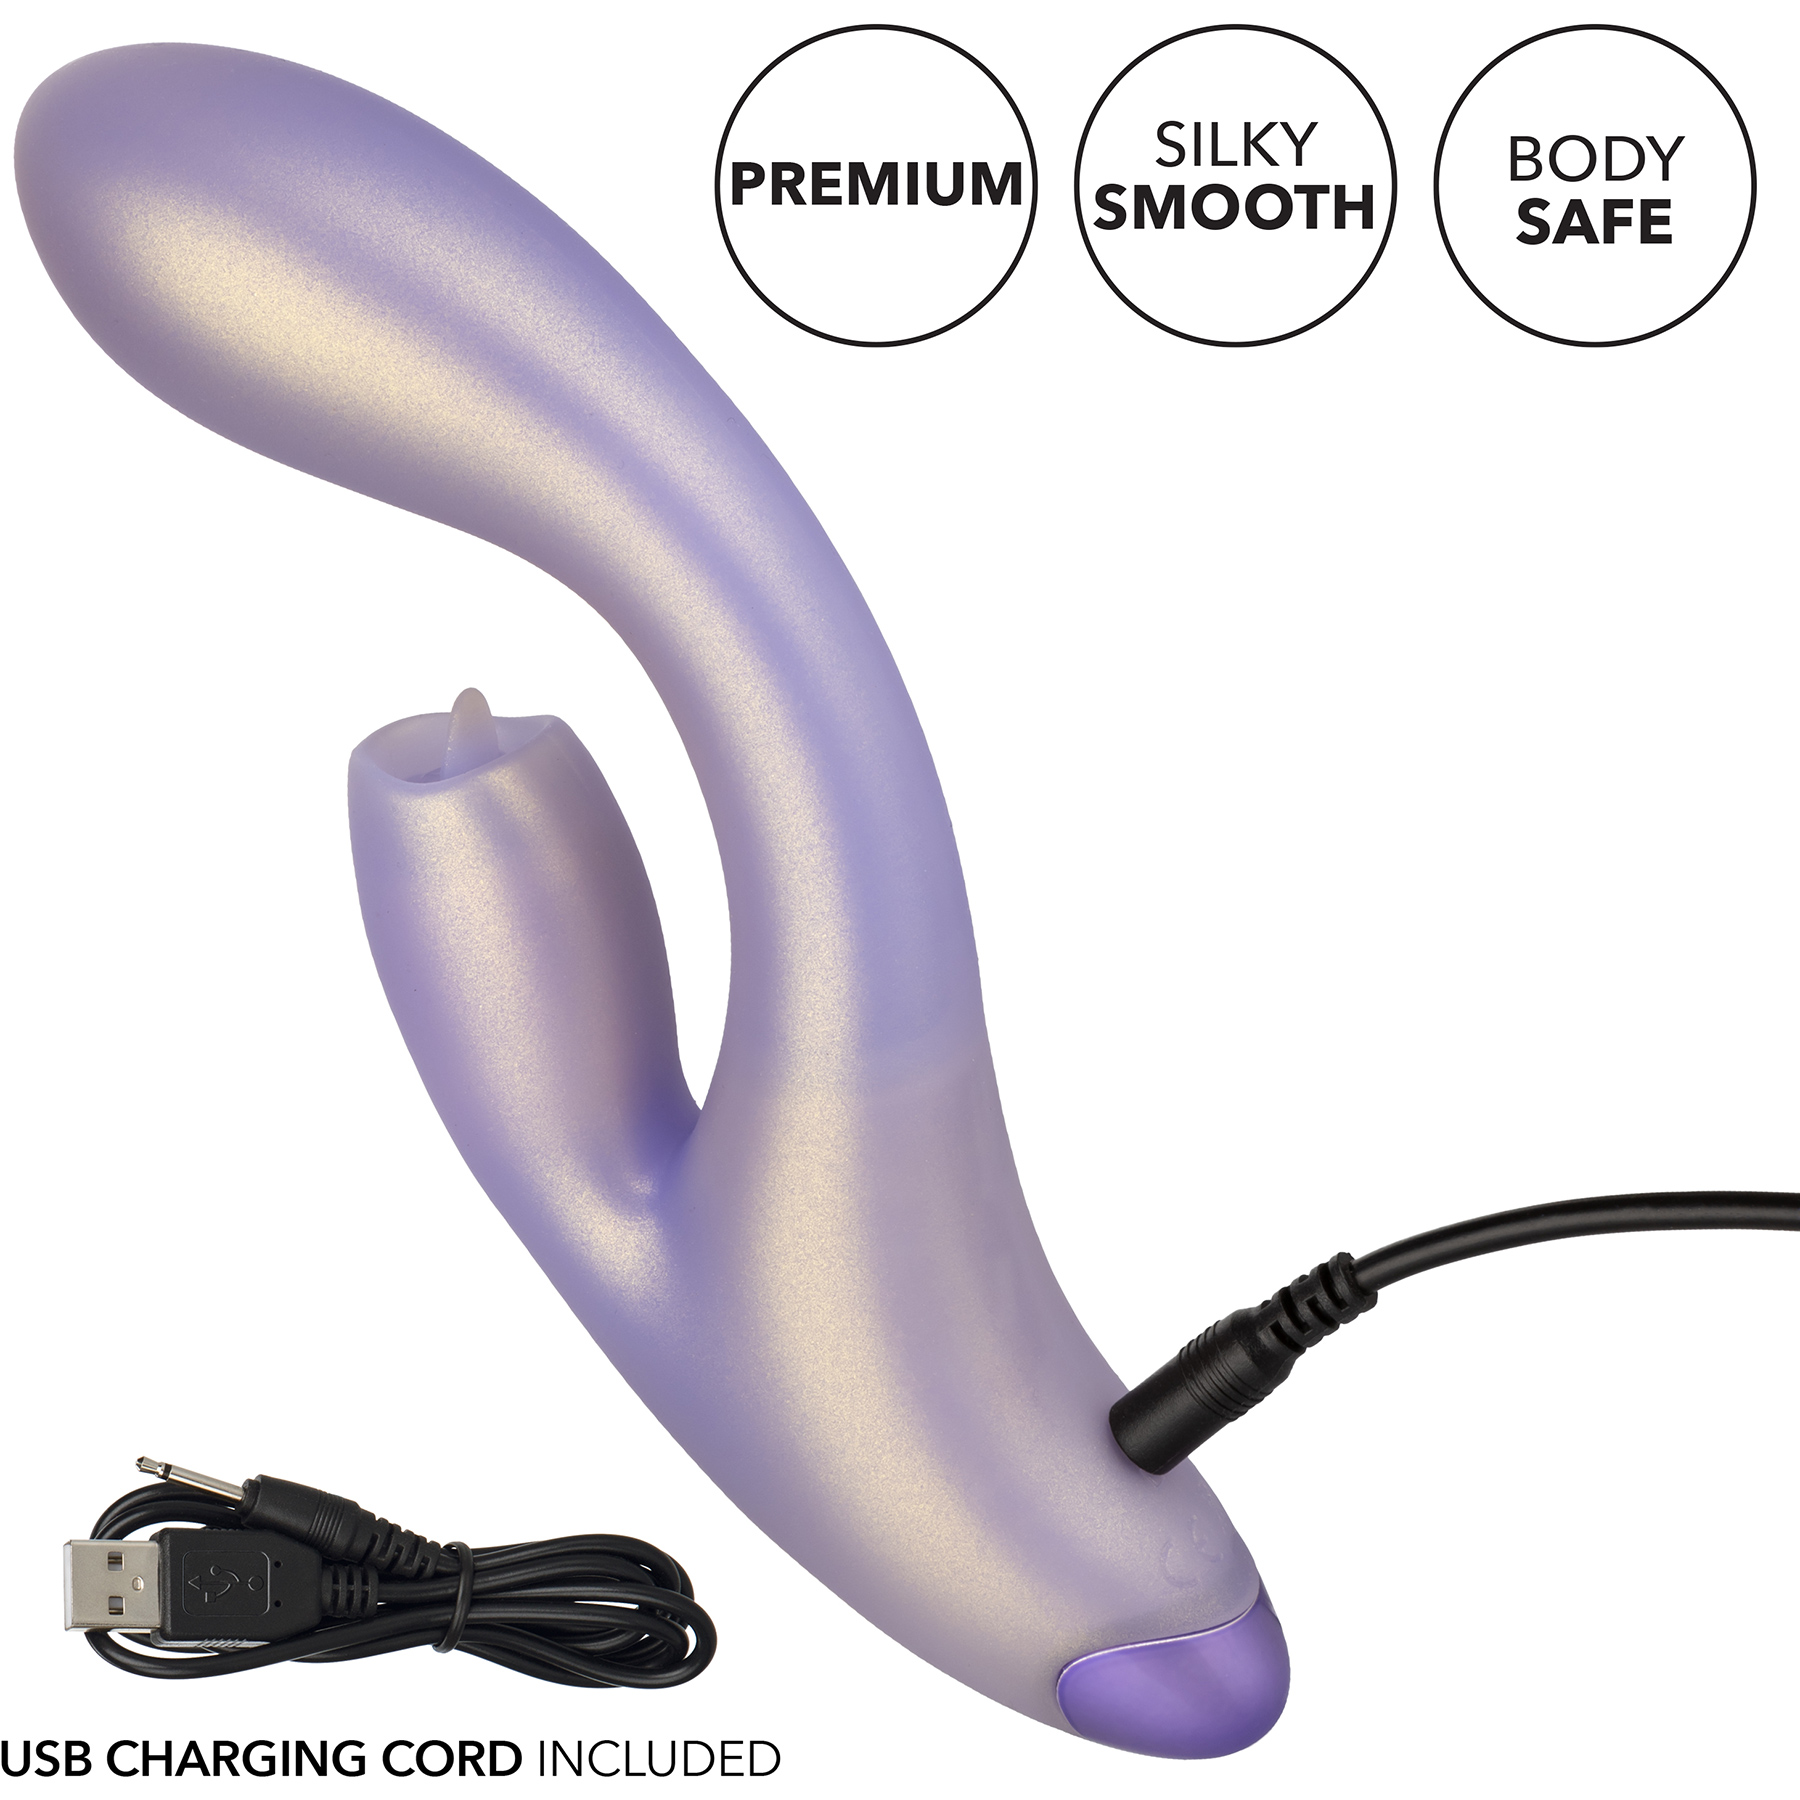 G-Love G-Kiss Silicone Rechargeable Waterproof Dual Stimulation Vibrator By CalExotics - Charging